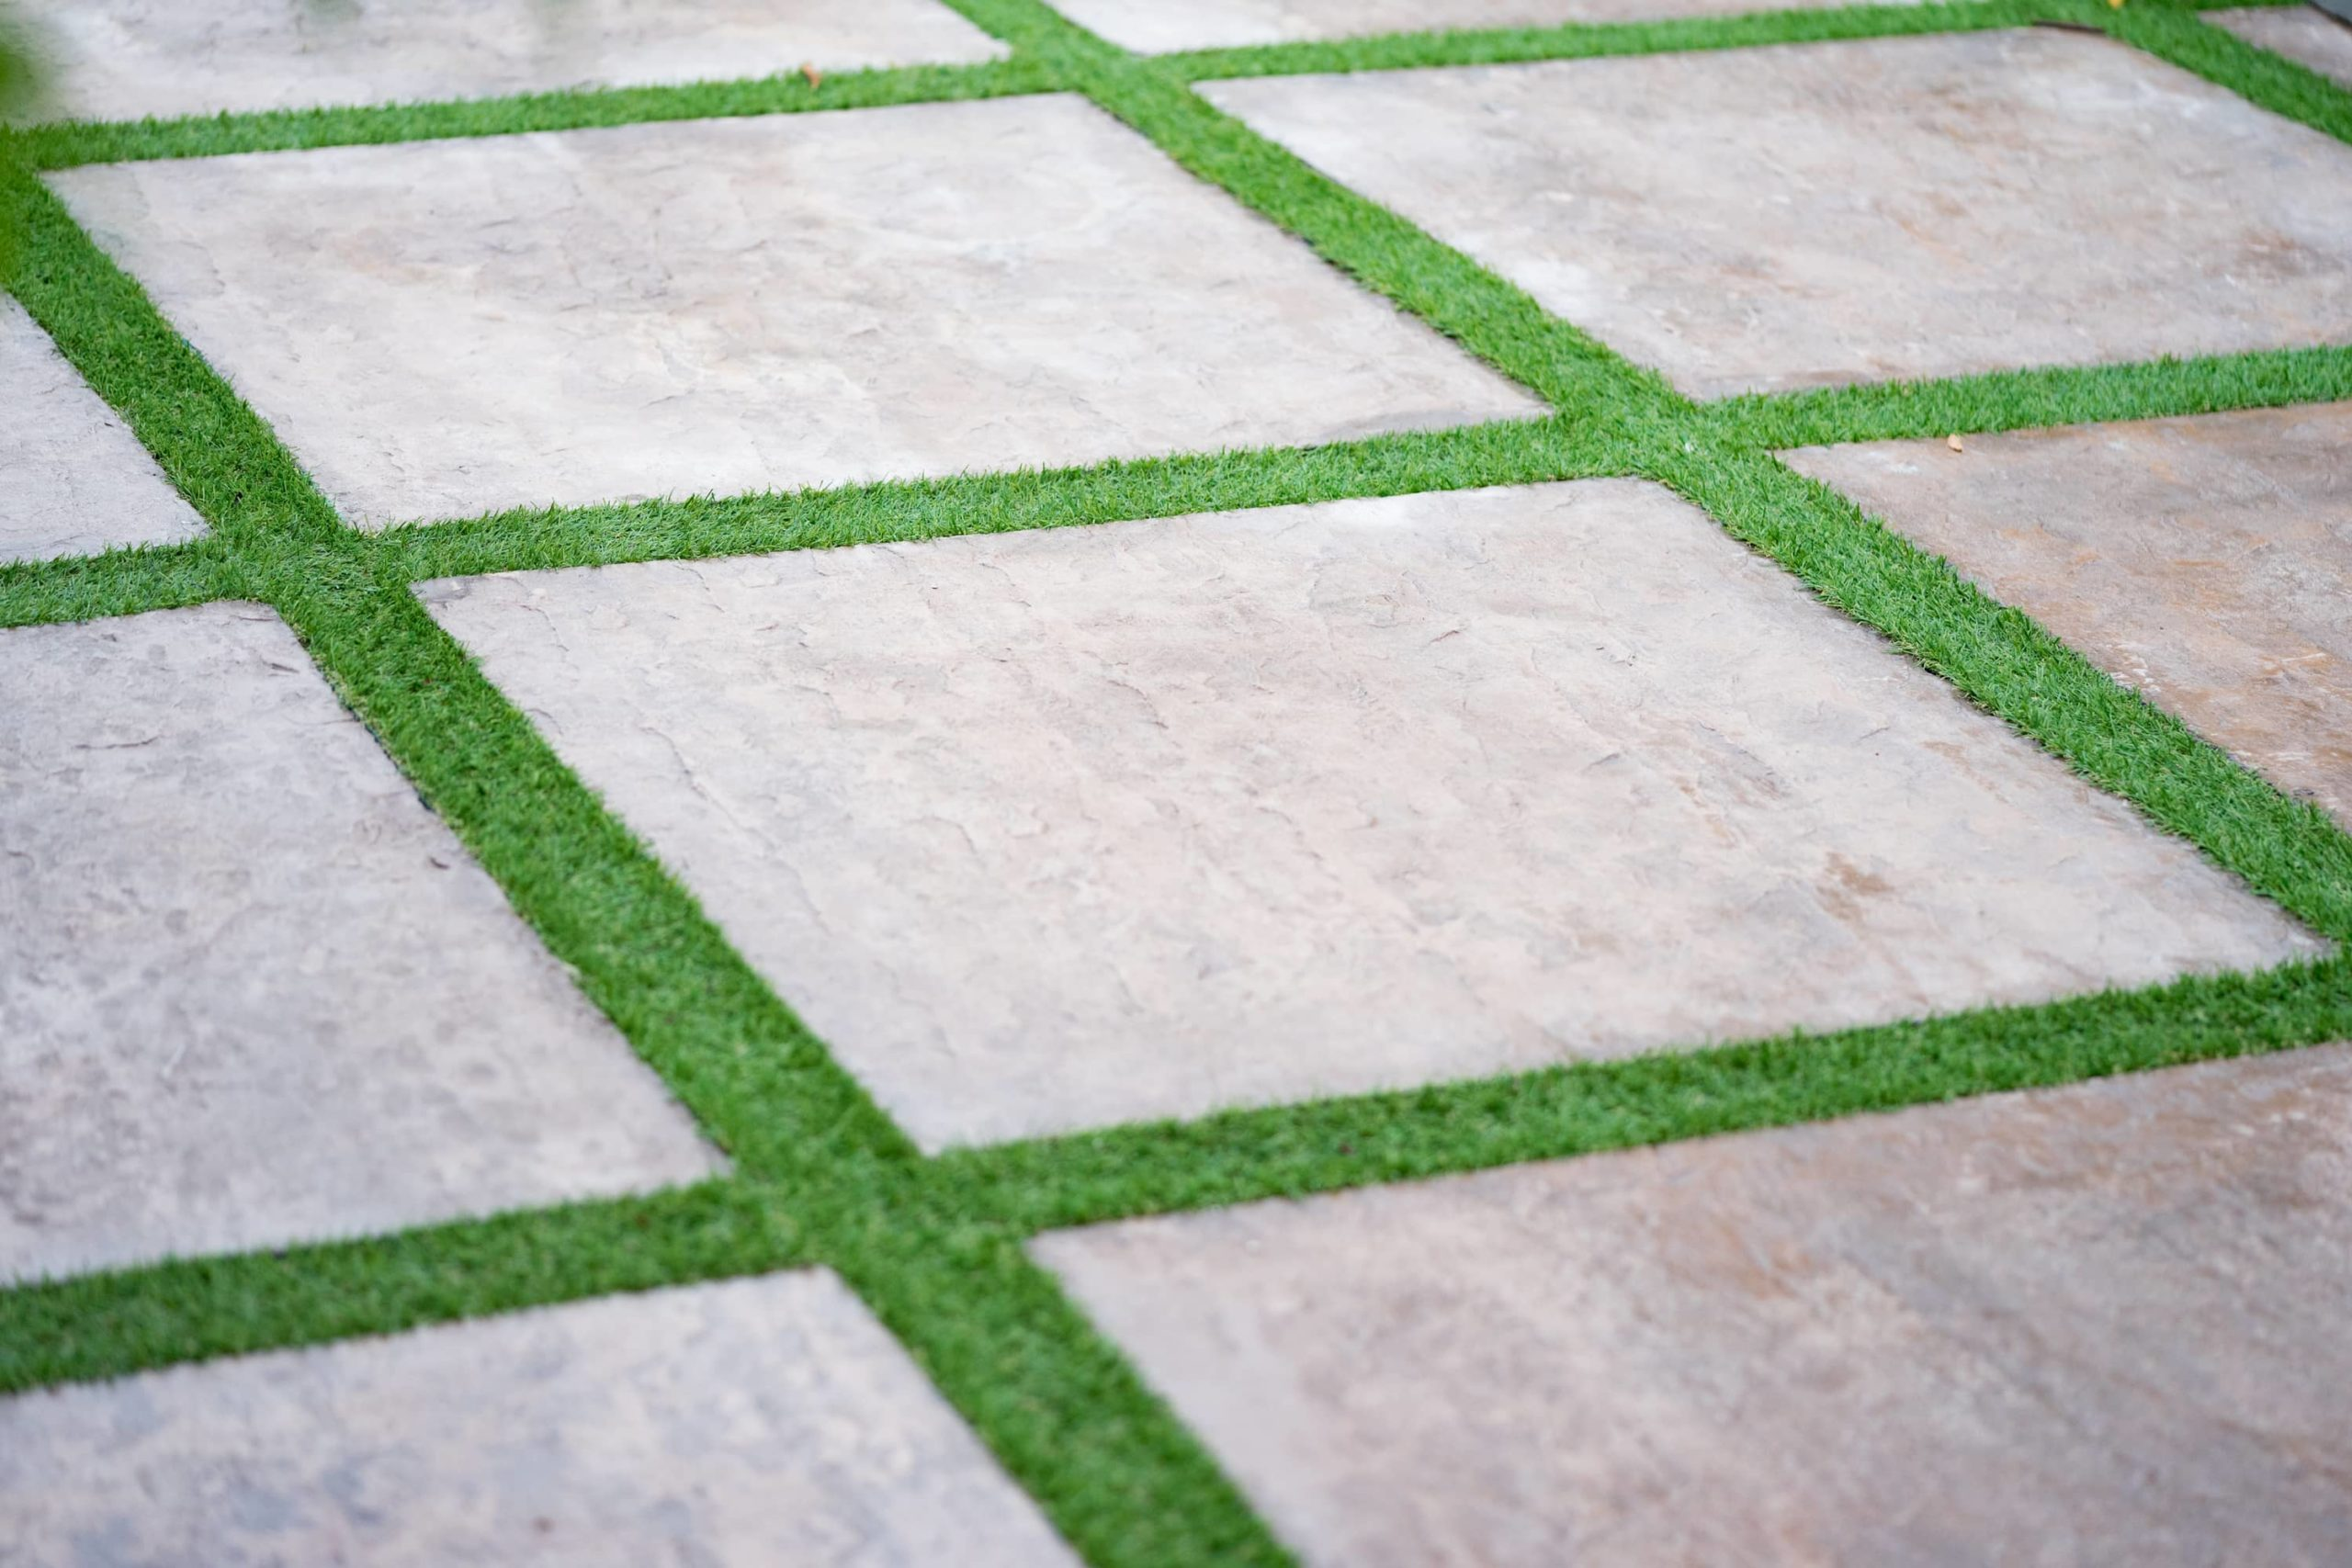 This is an image of textured concrete paving walkway.